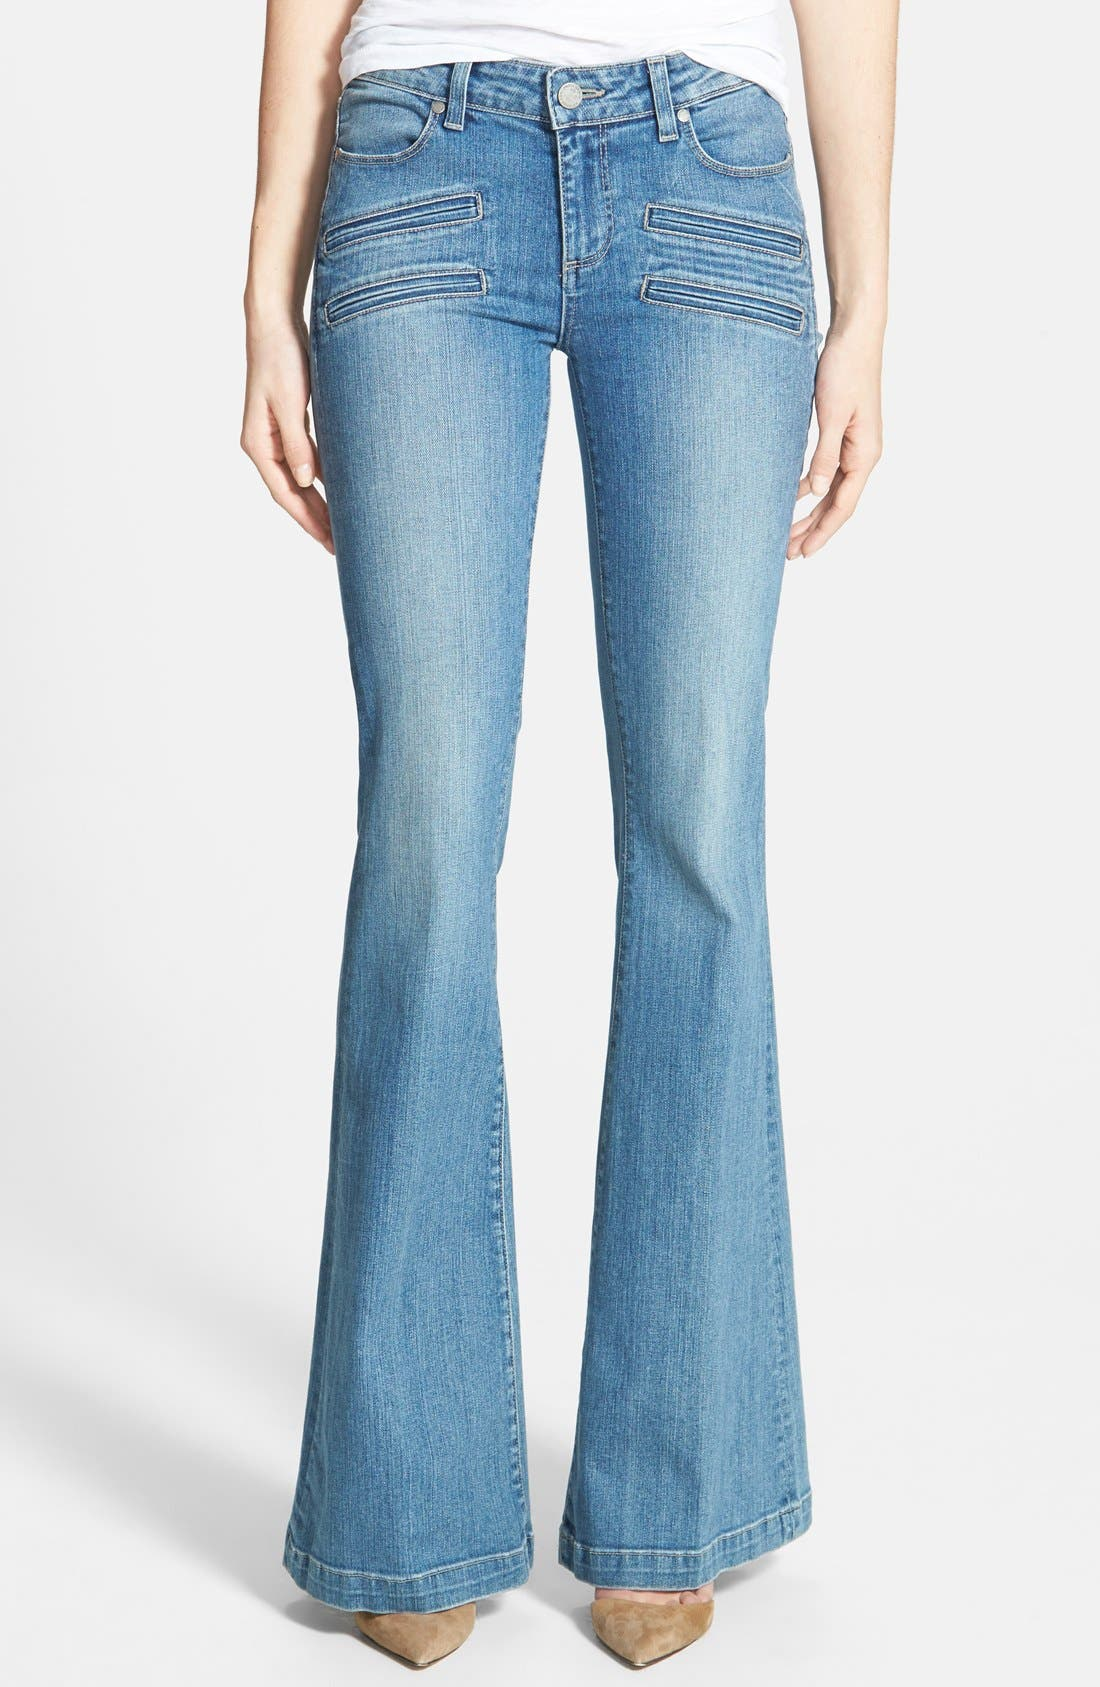 Denim 'Fionna' Flare Jeans,                             Main thumbnail 1, color,                             Paulina No Whiskers